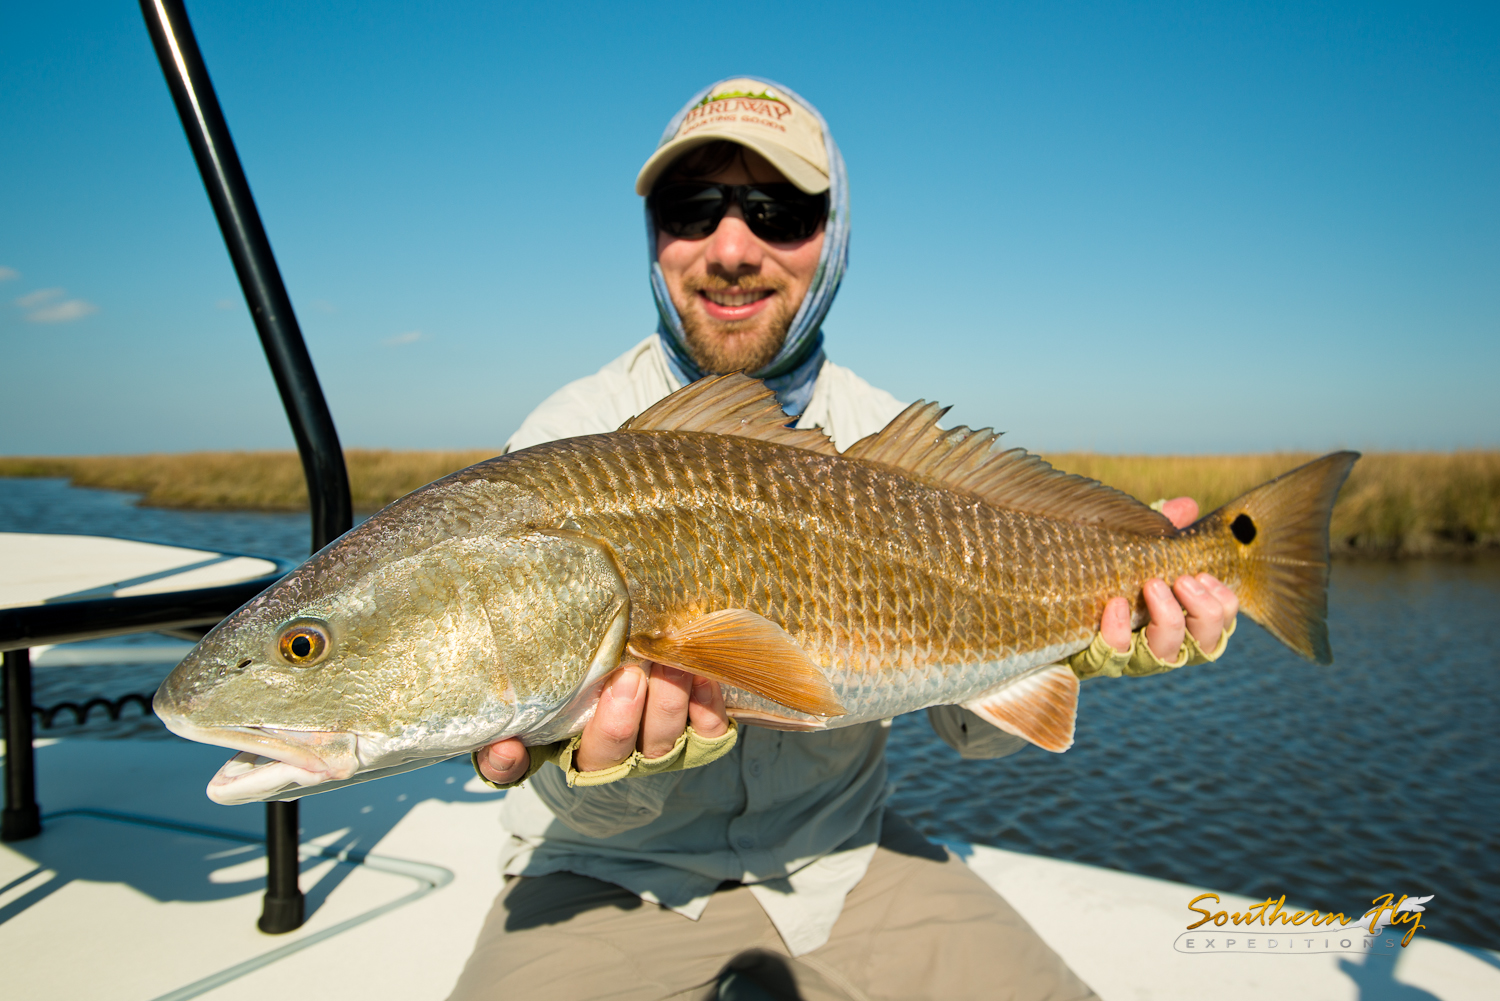 Redfish Guide New Orleans Southern Fly Expeditions